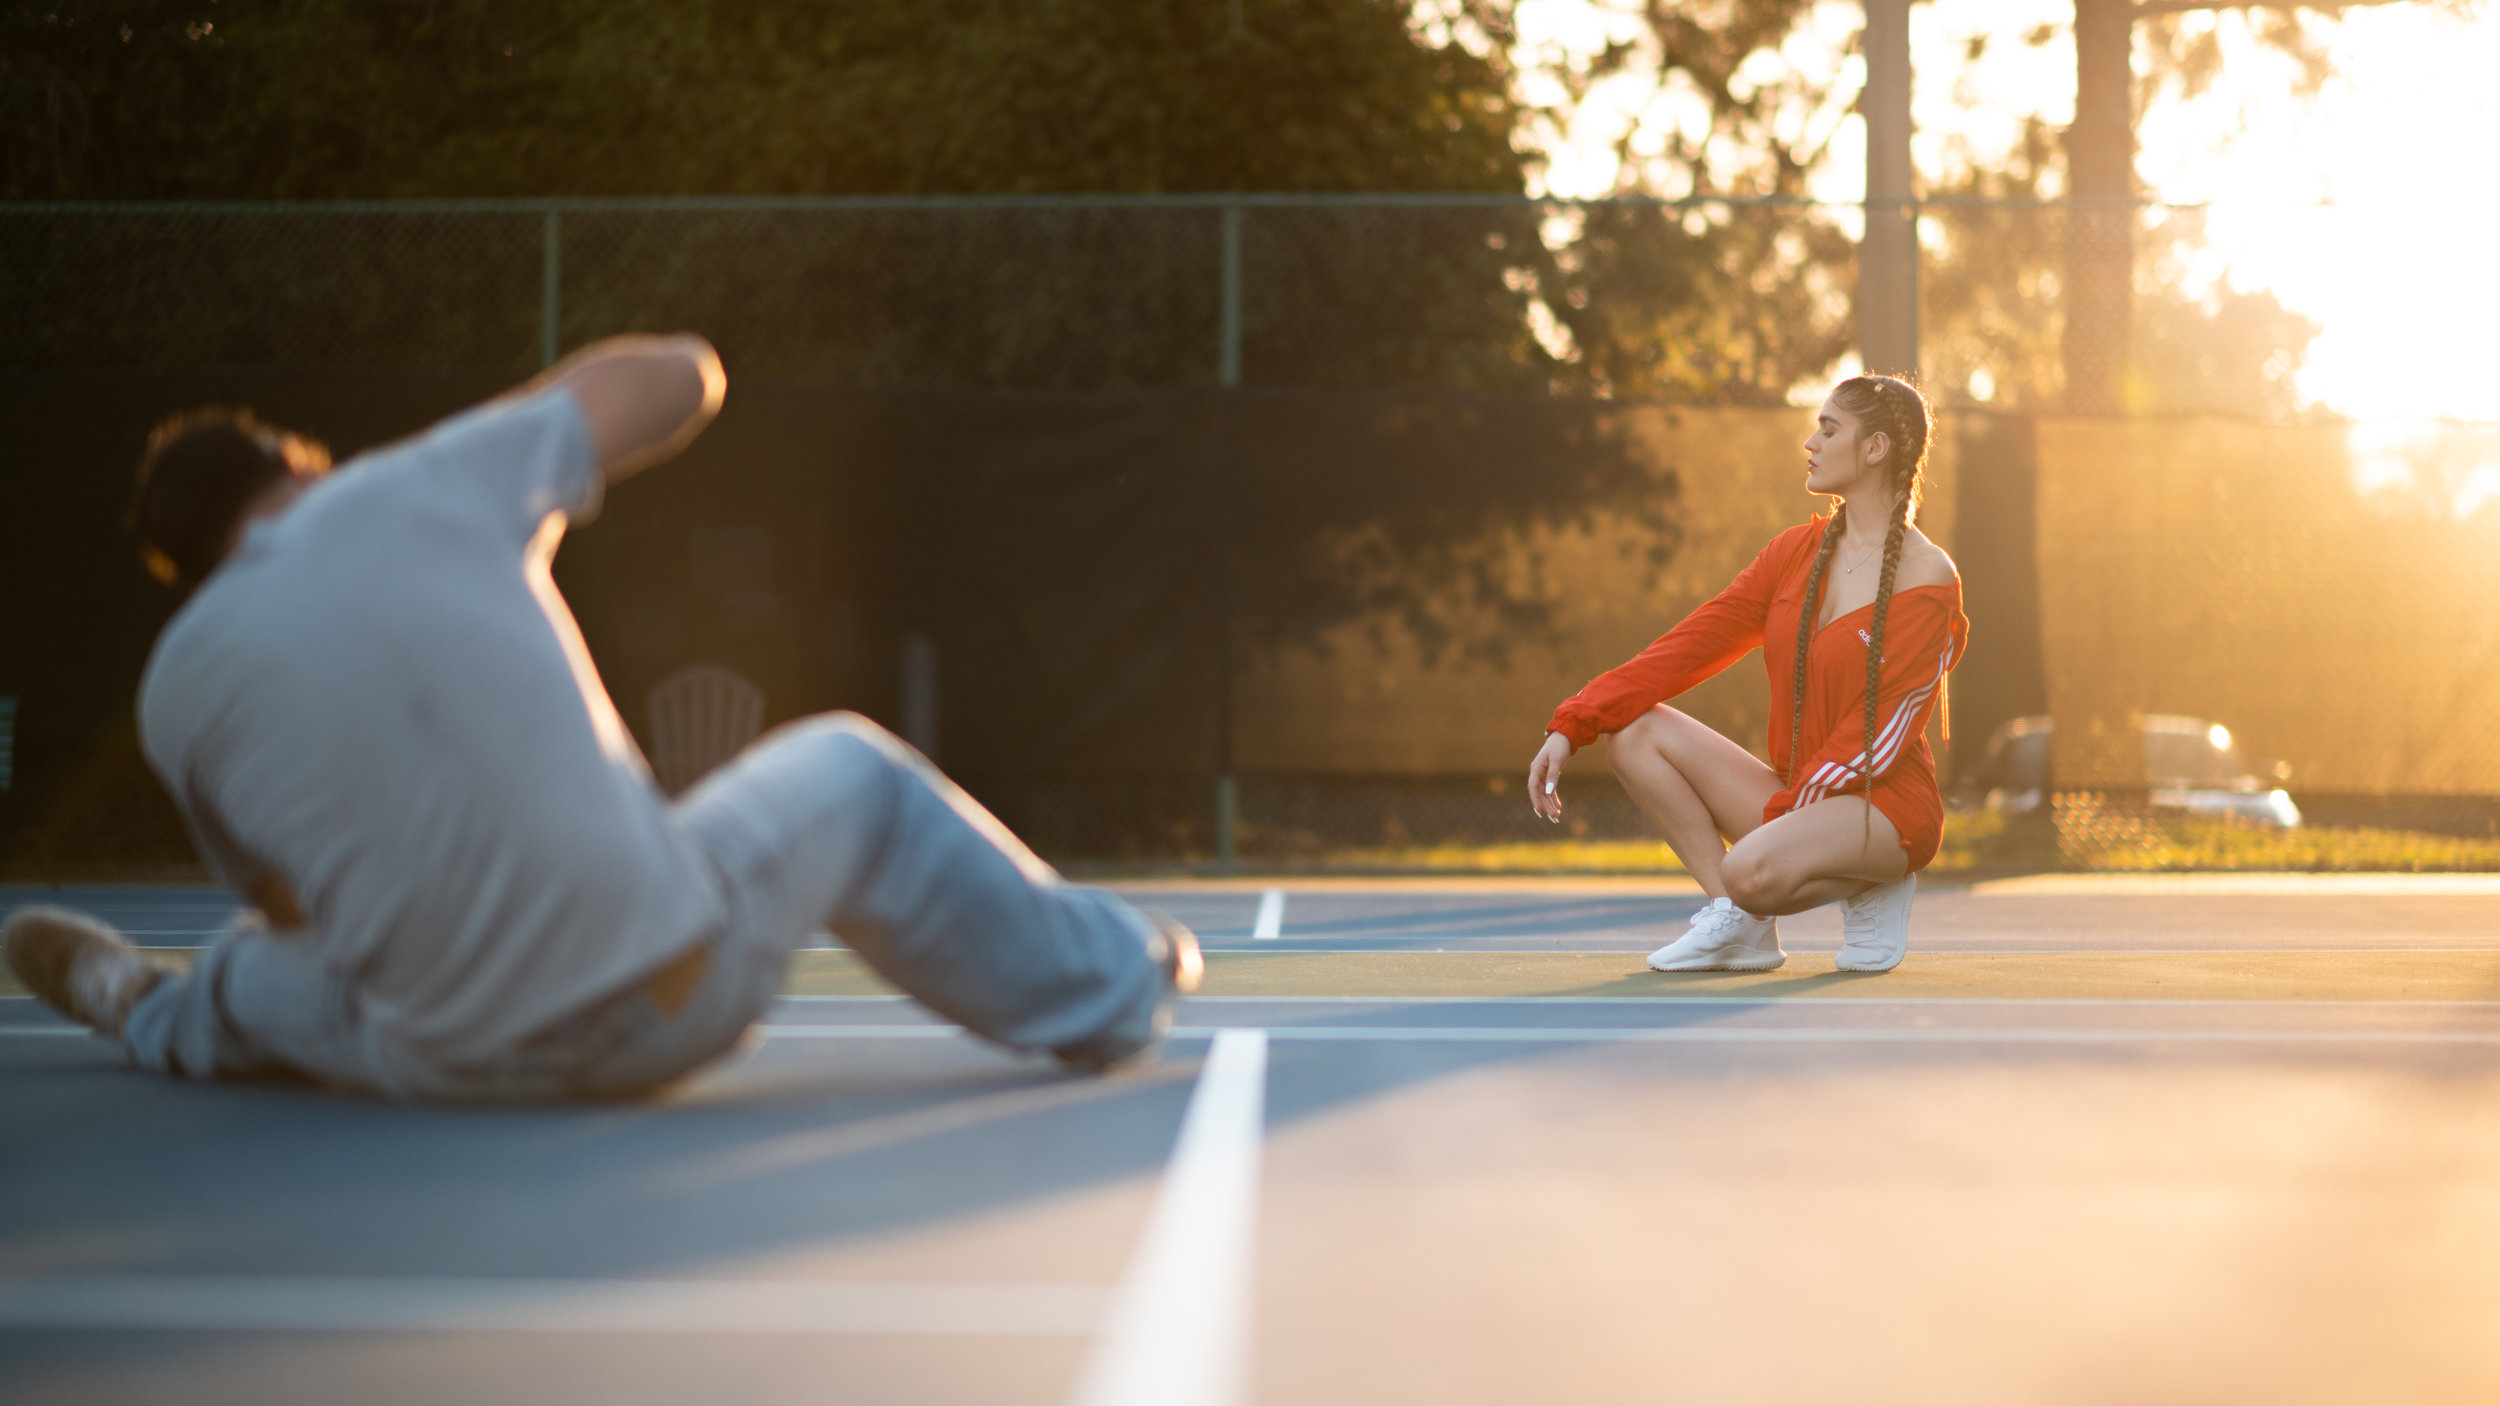 Tennis Shoot BTS (Tyler)-2.jpg